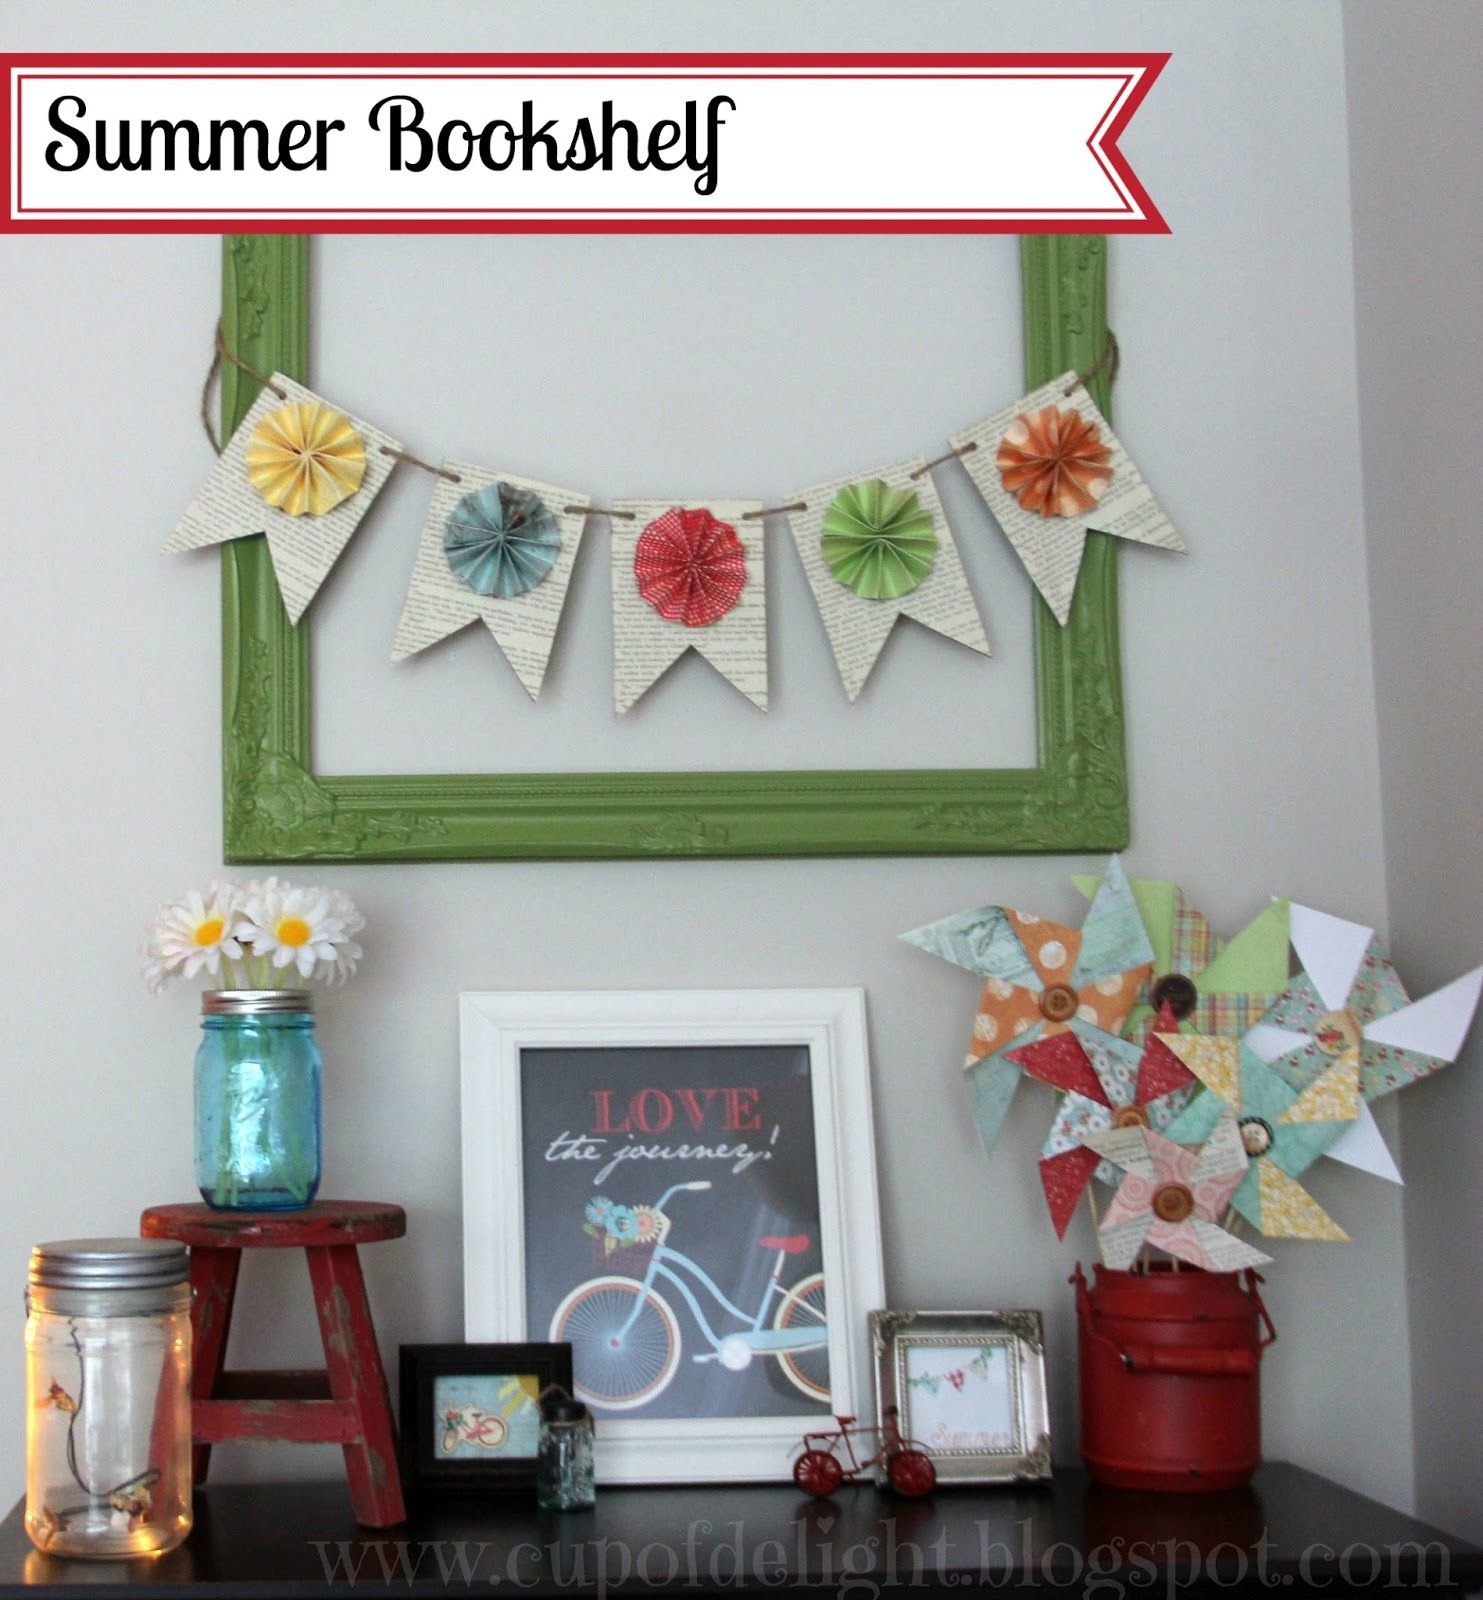 Cup of Delight: Summer Bookshelf